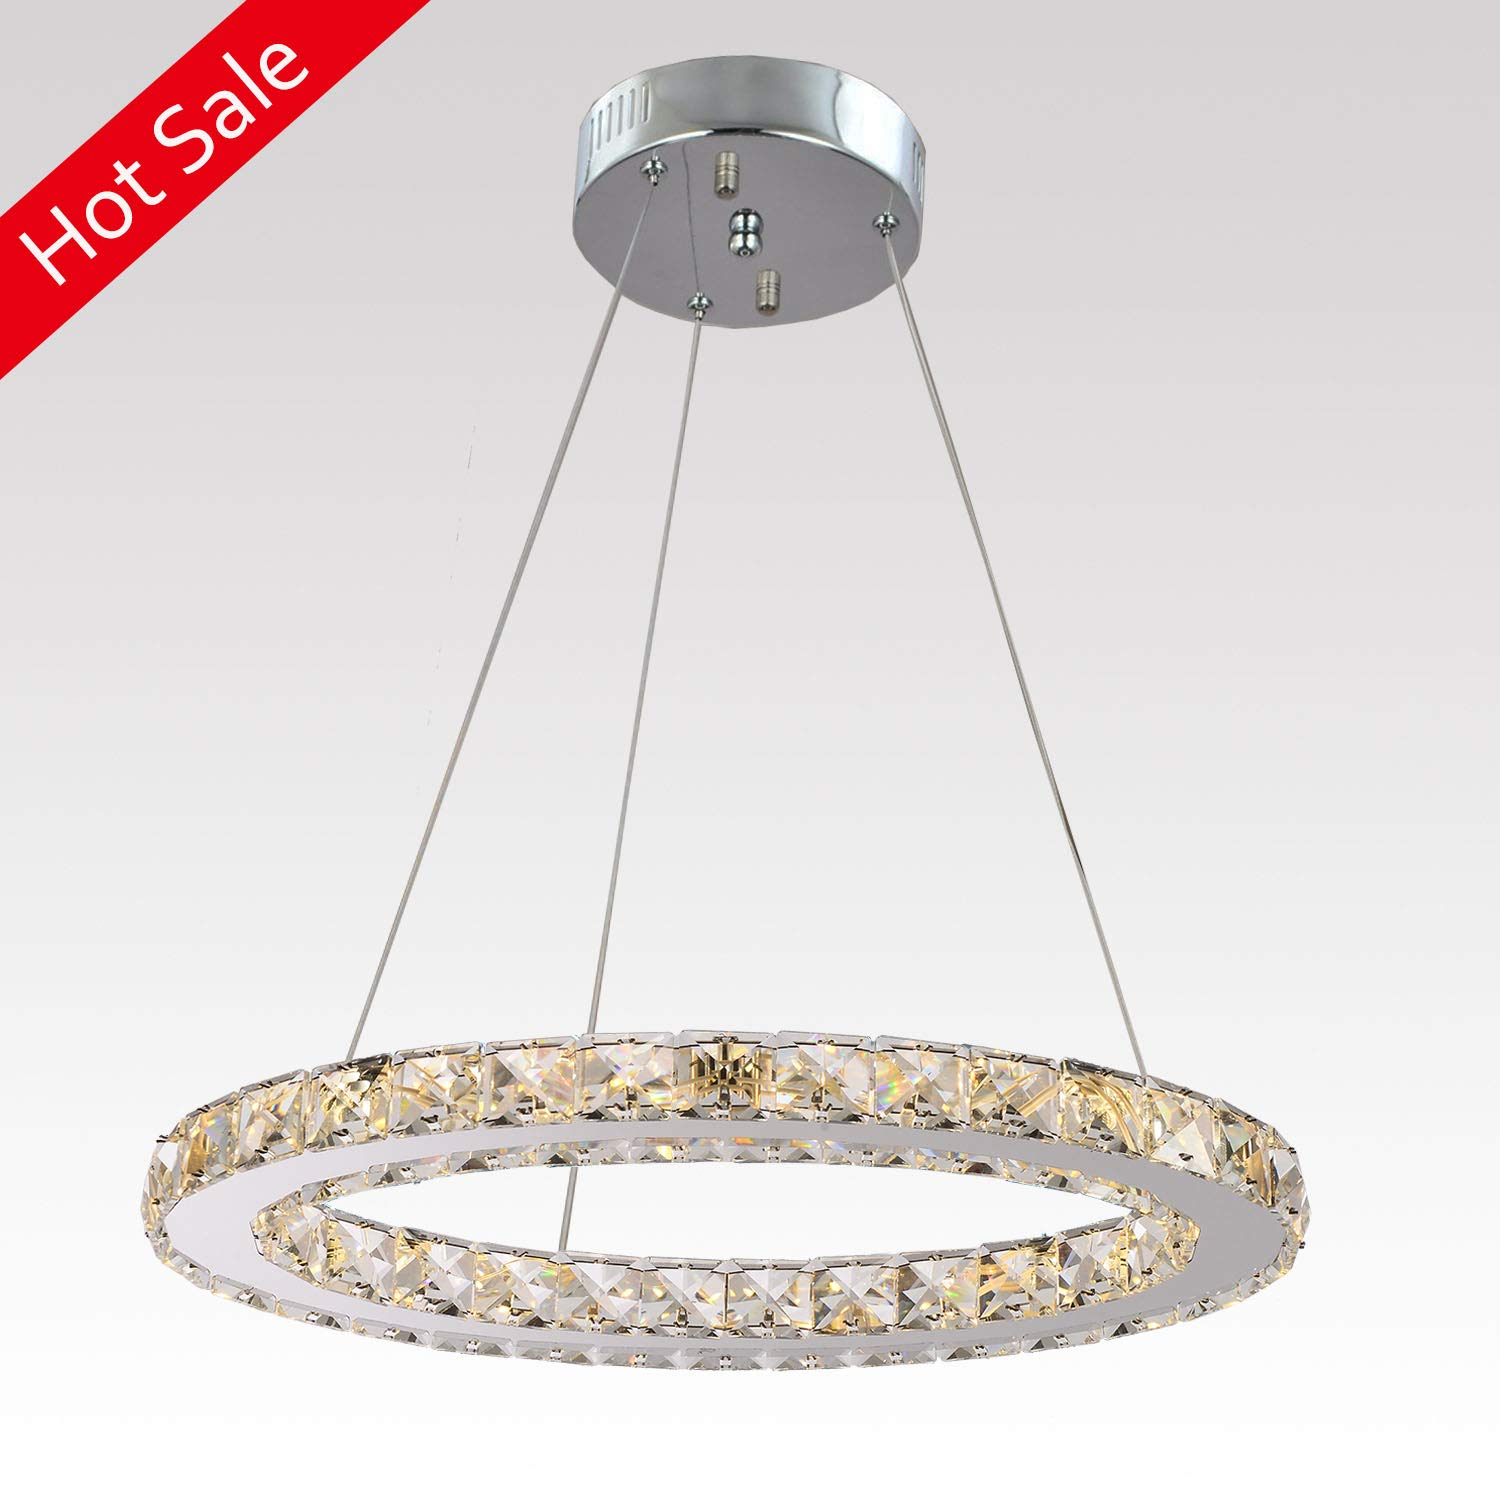 "Ganeed Chandeliers,Crystal Glass Chandelier,Pendant Lighting Ceiling Lights Fixtures for Living Room Bedroom Restaurant Porch Dining Room,One Rings (Dia 11.8"",6500K)"